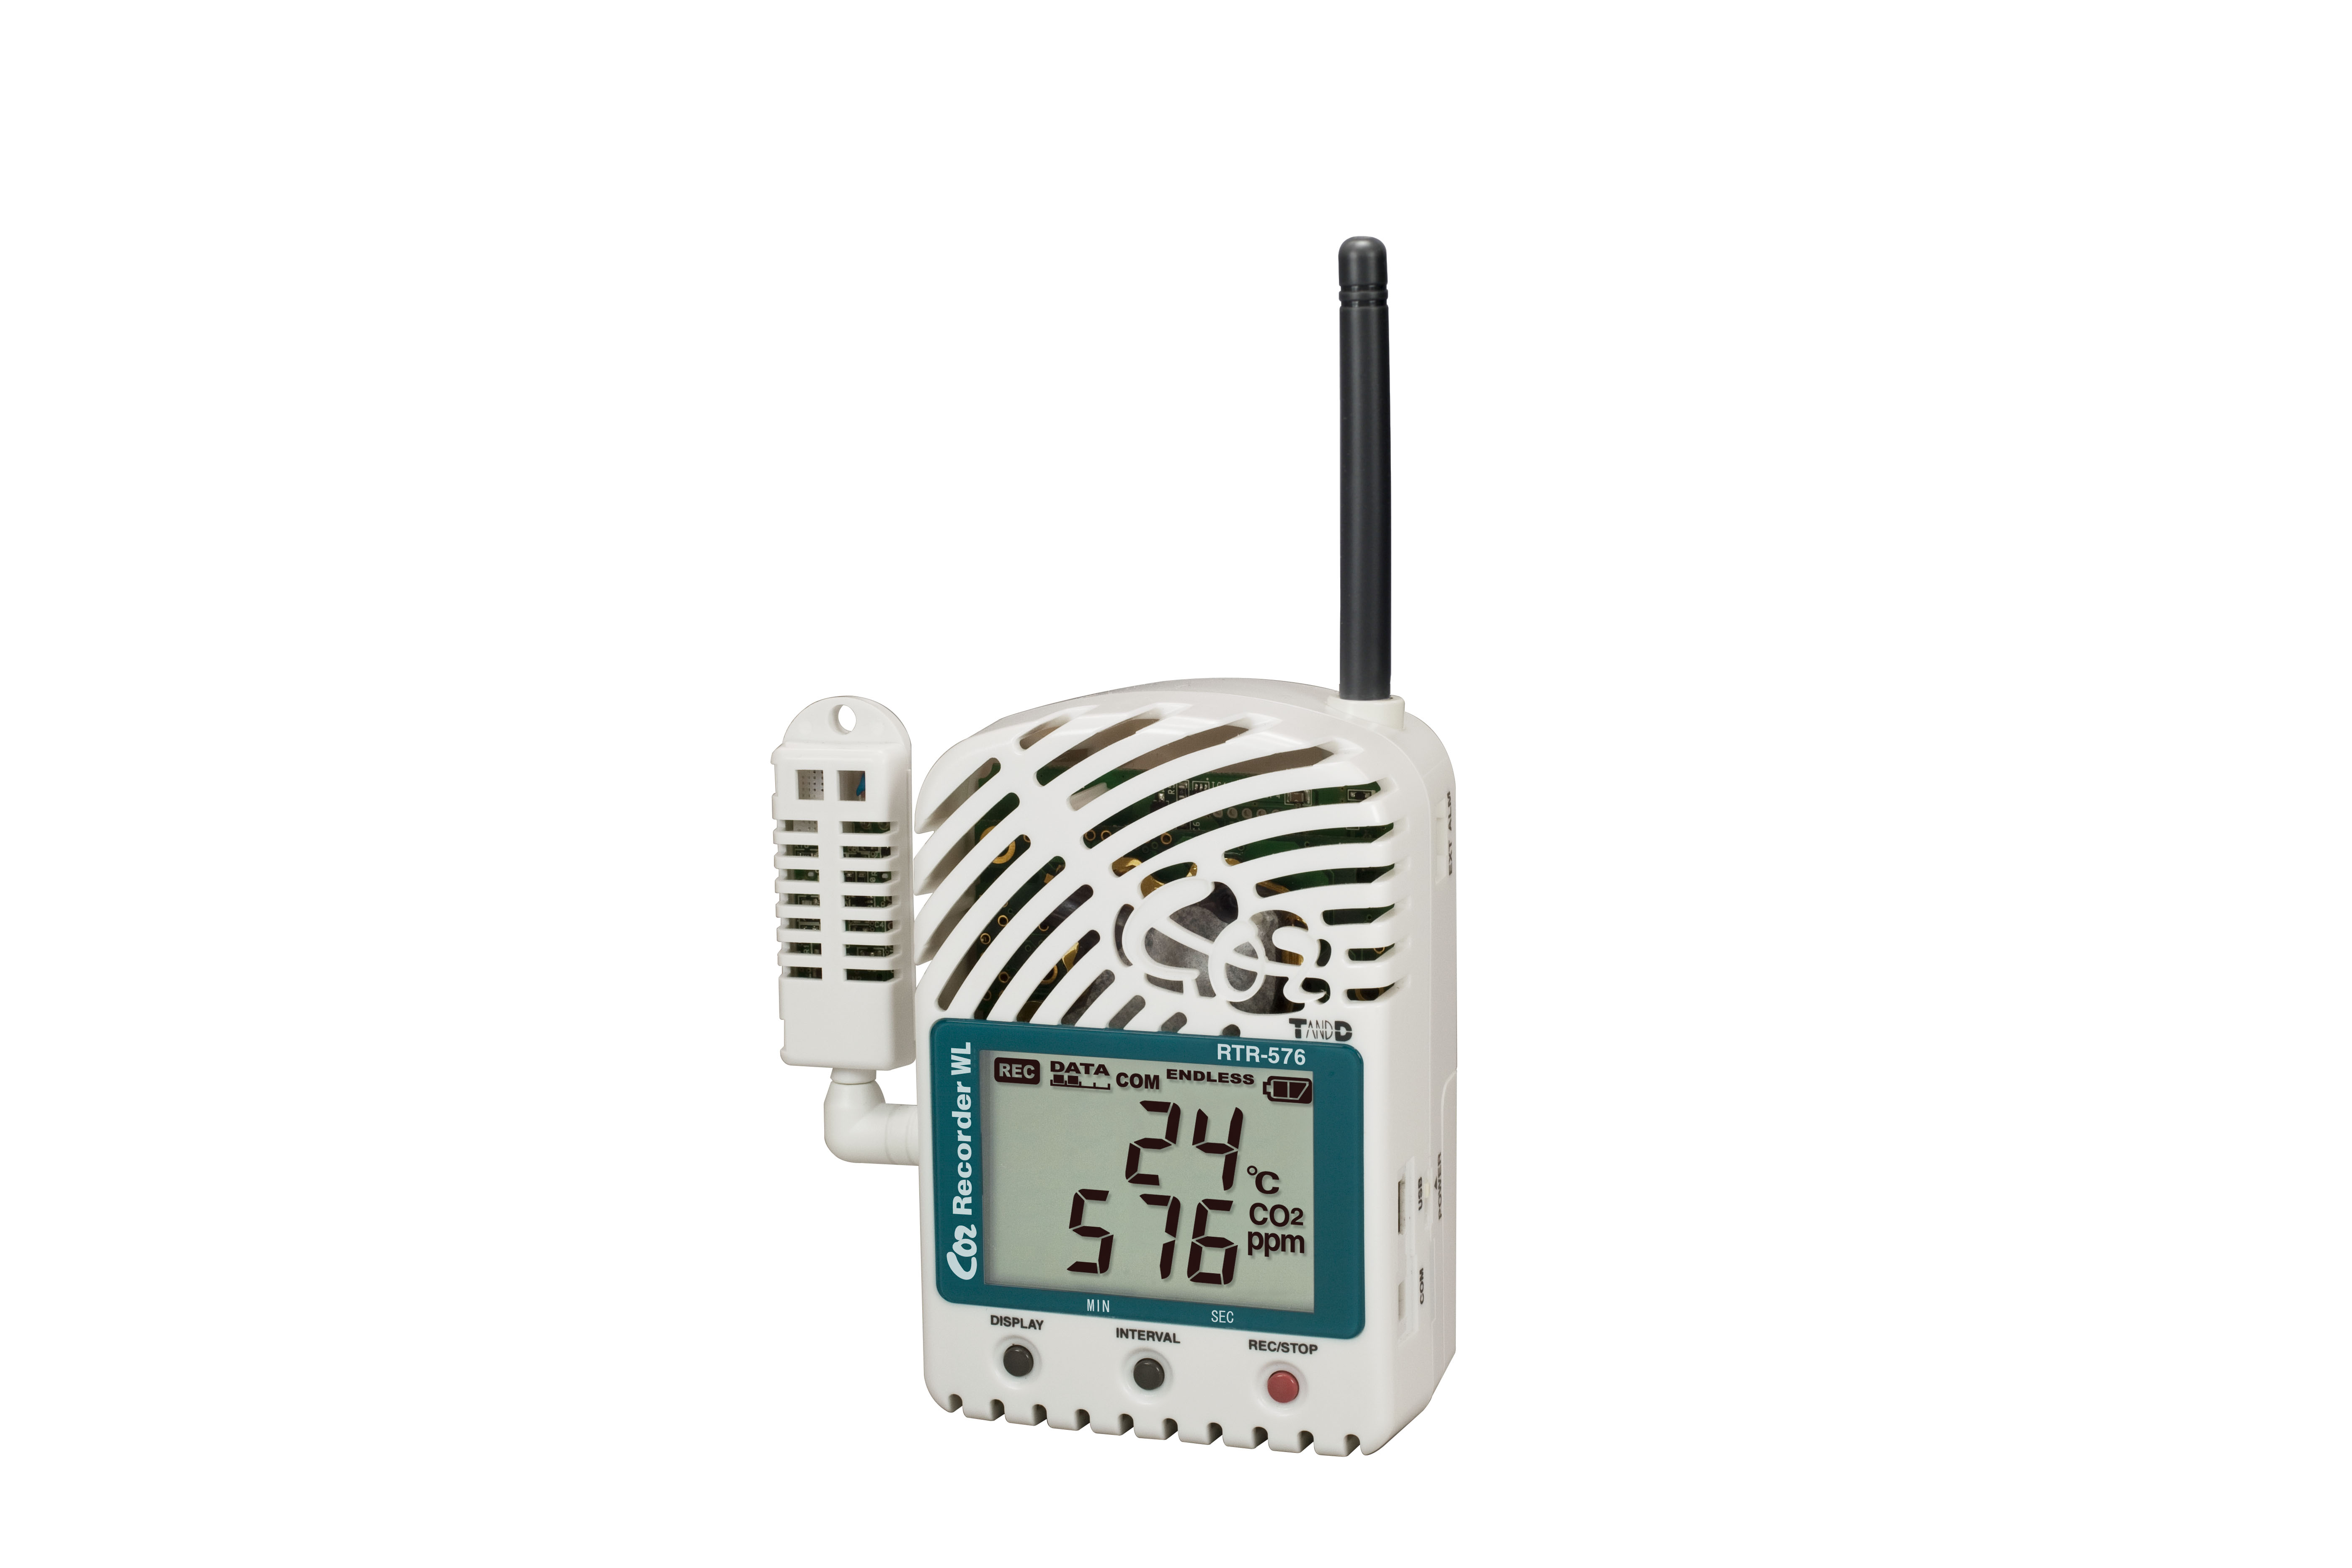 TADREC040: RTR-576 C02, Temperature, and Humidity Data Logger